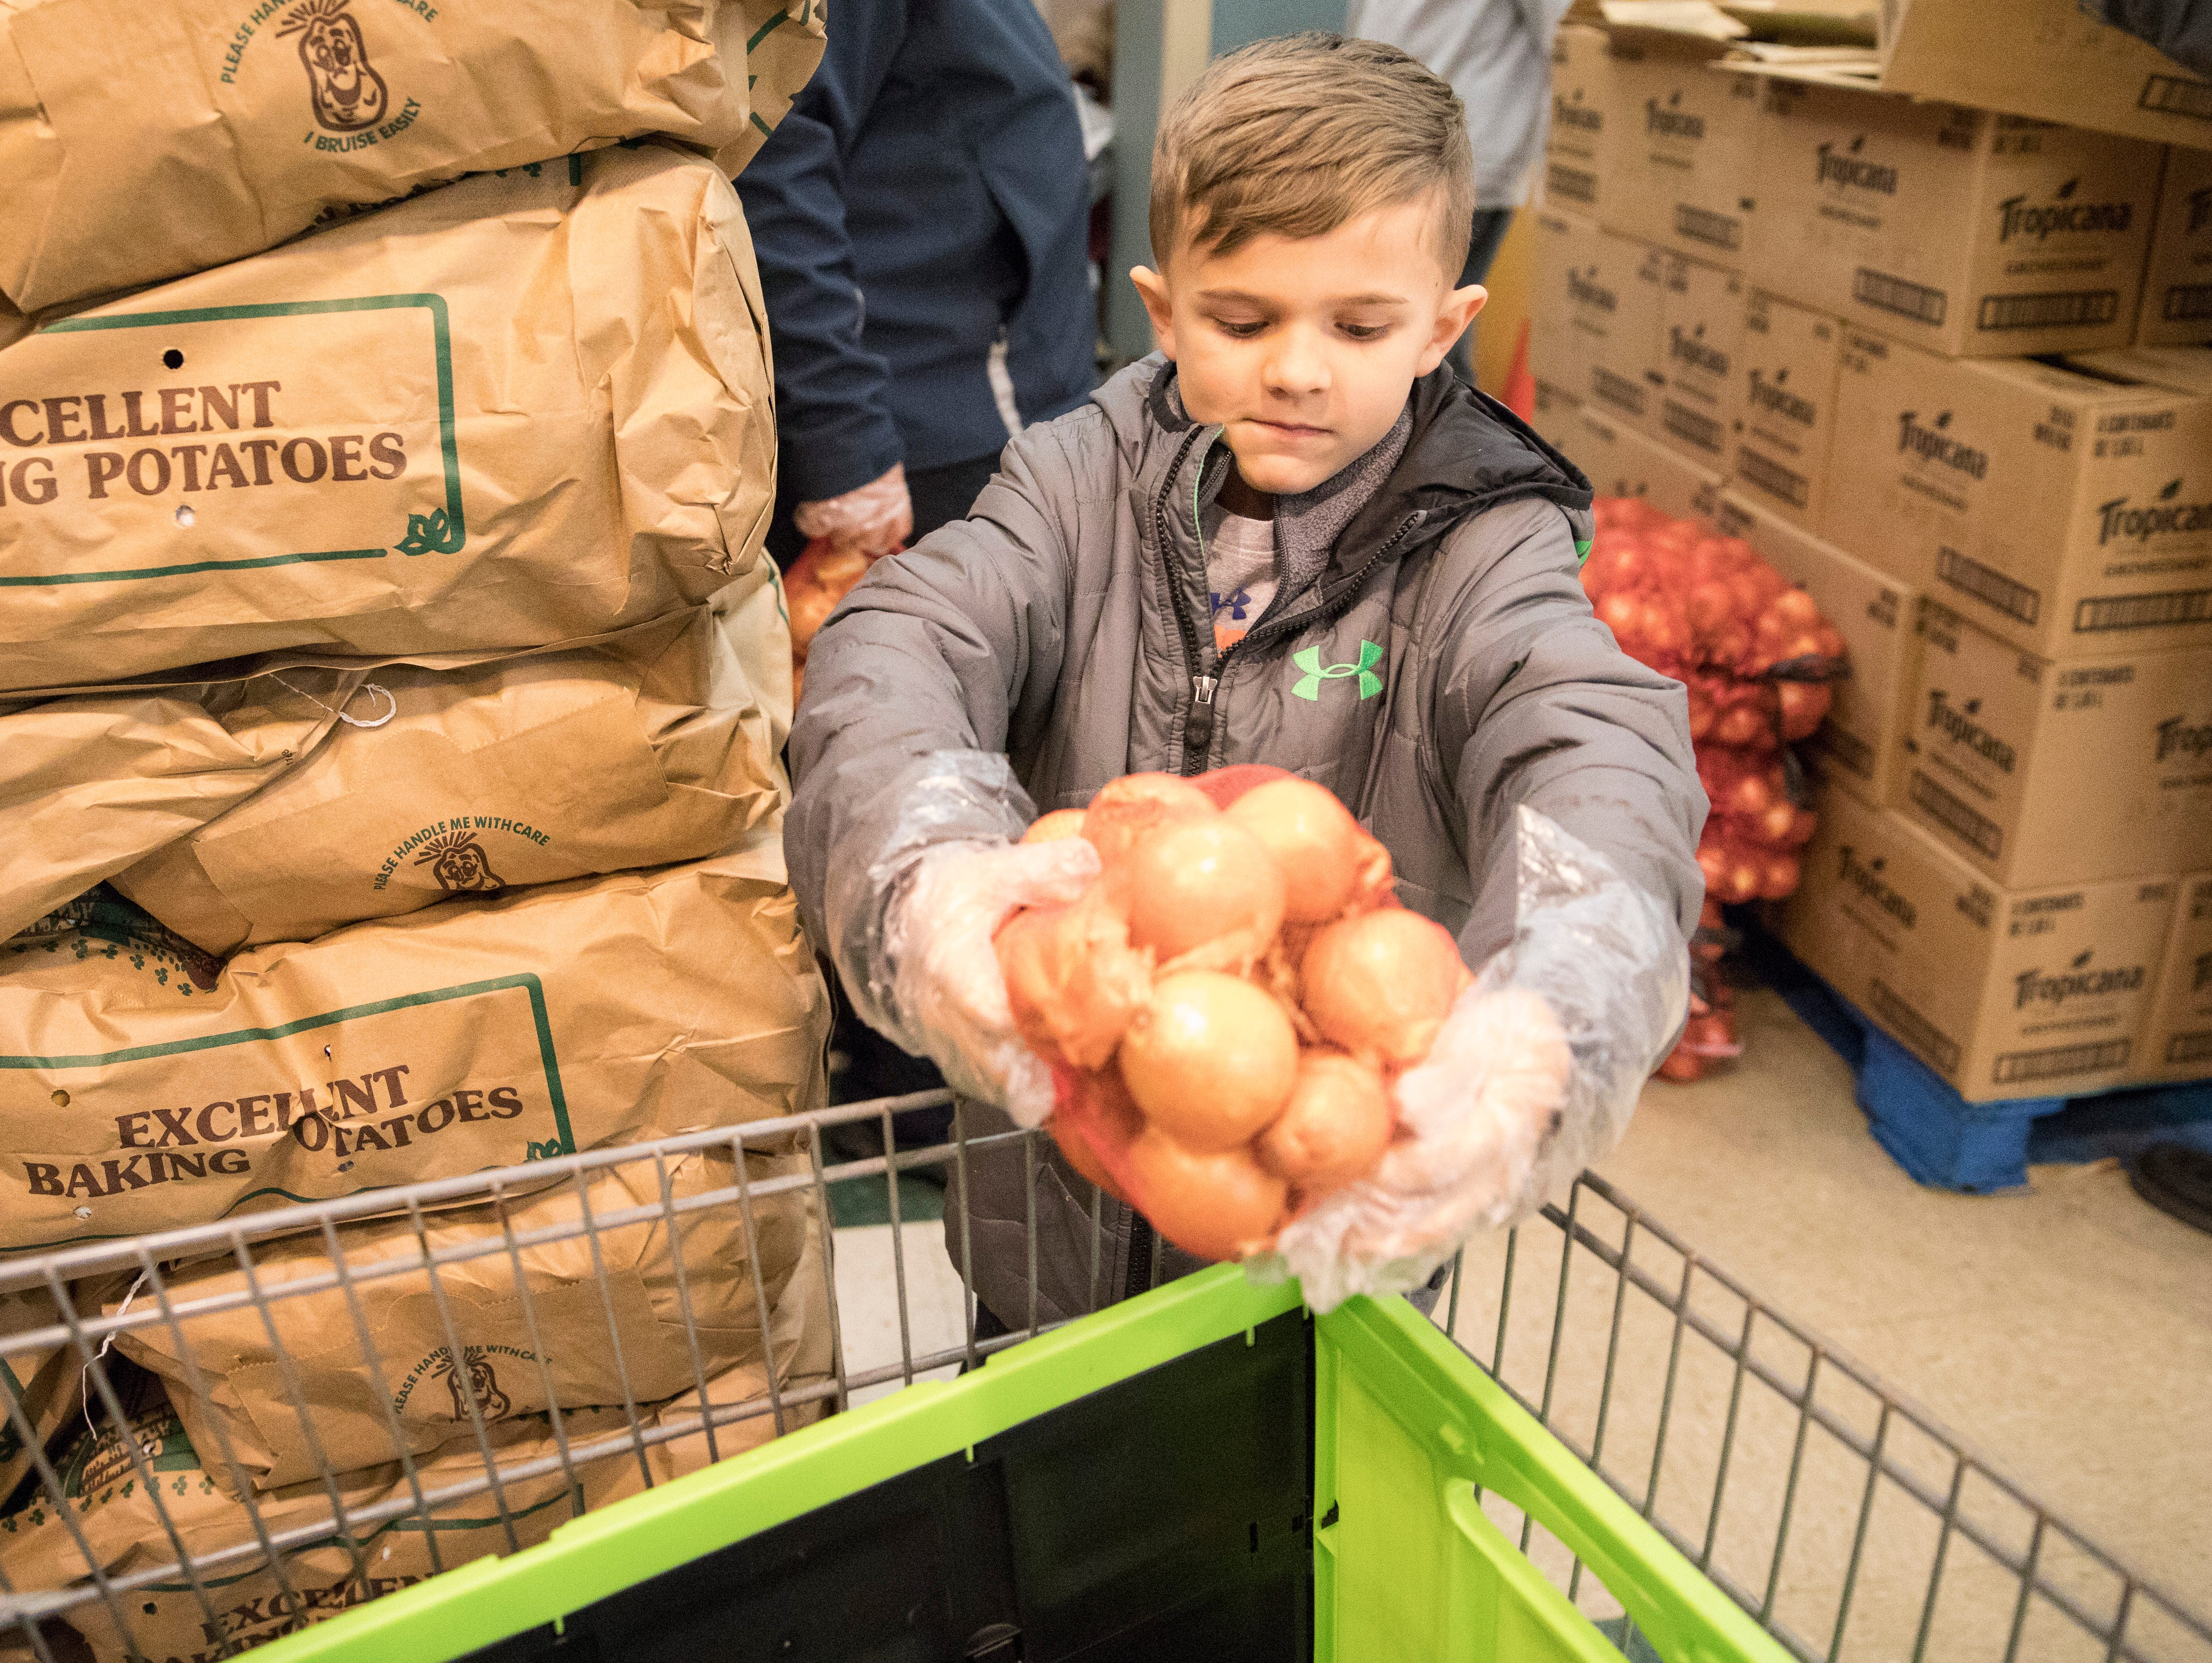 Ethan Young, 6, volunteers his time at the Mobile Market  in Chillicothe, Ohio, Monday night.